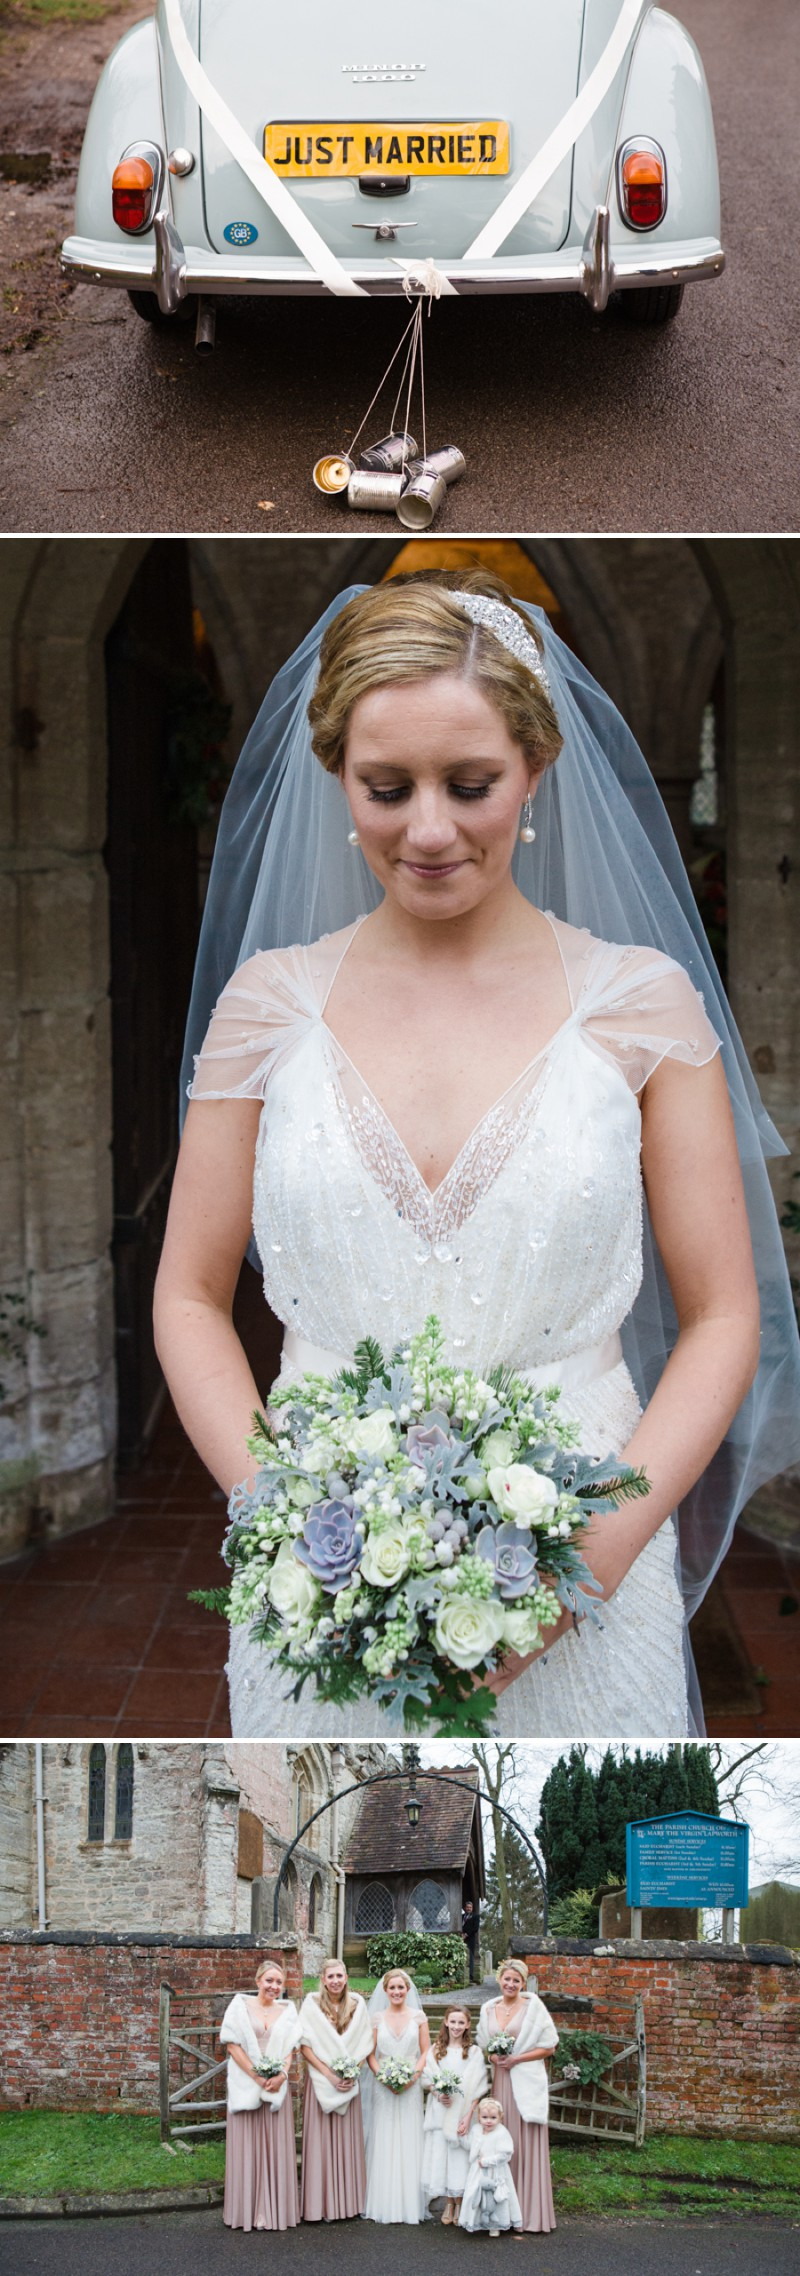 A Warm Winter Glamorous Rustic Wedding With A Jenny Packham Dress And Blue Toned Bouquet With Photography By Lucy Davenport._0005